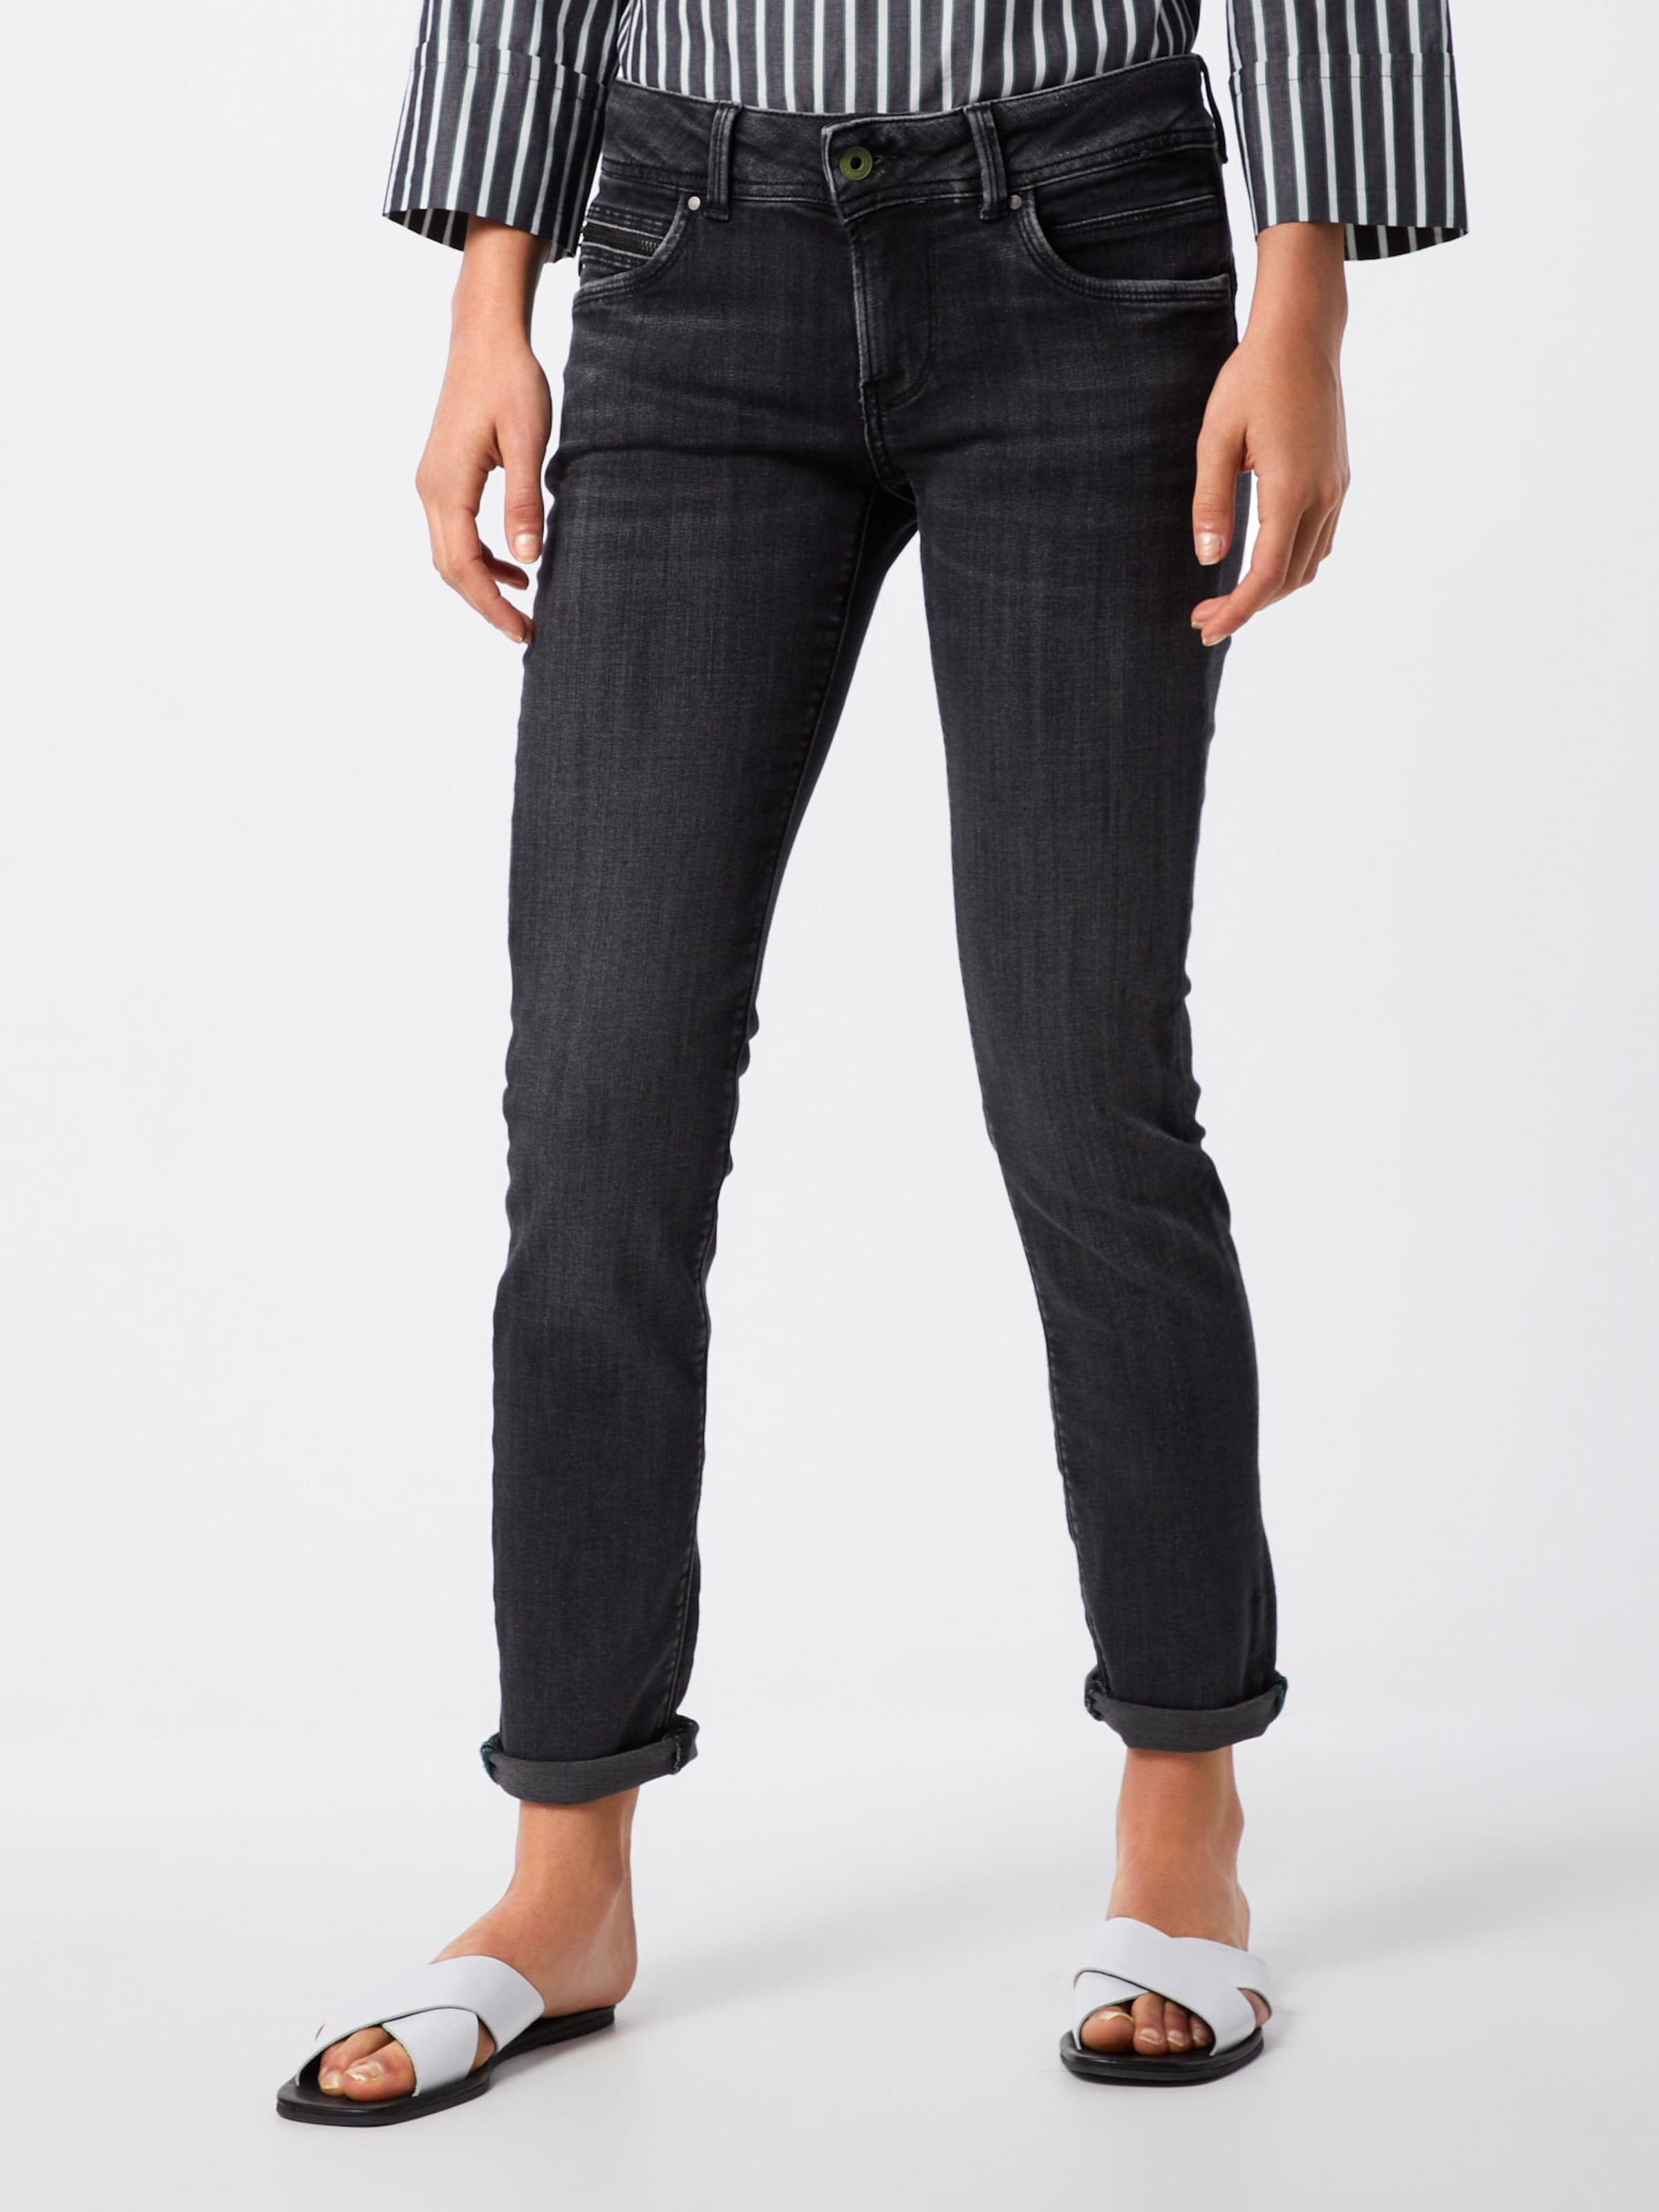 Pepe Brooke' 'new In Denim Jeans Black 1JcTlKF